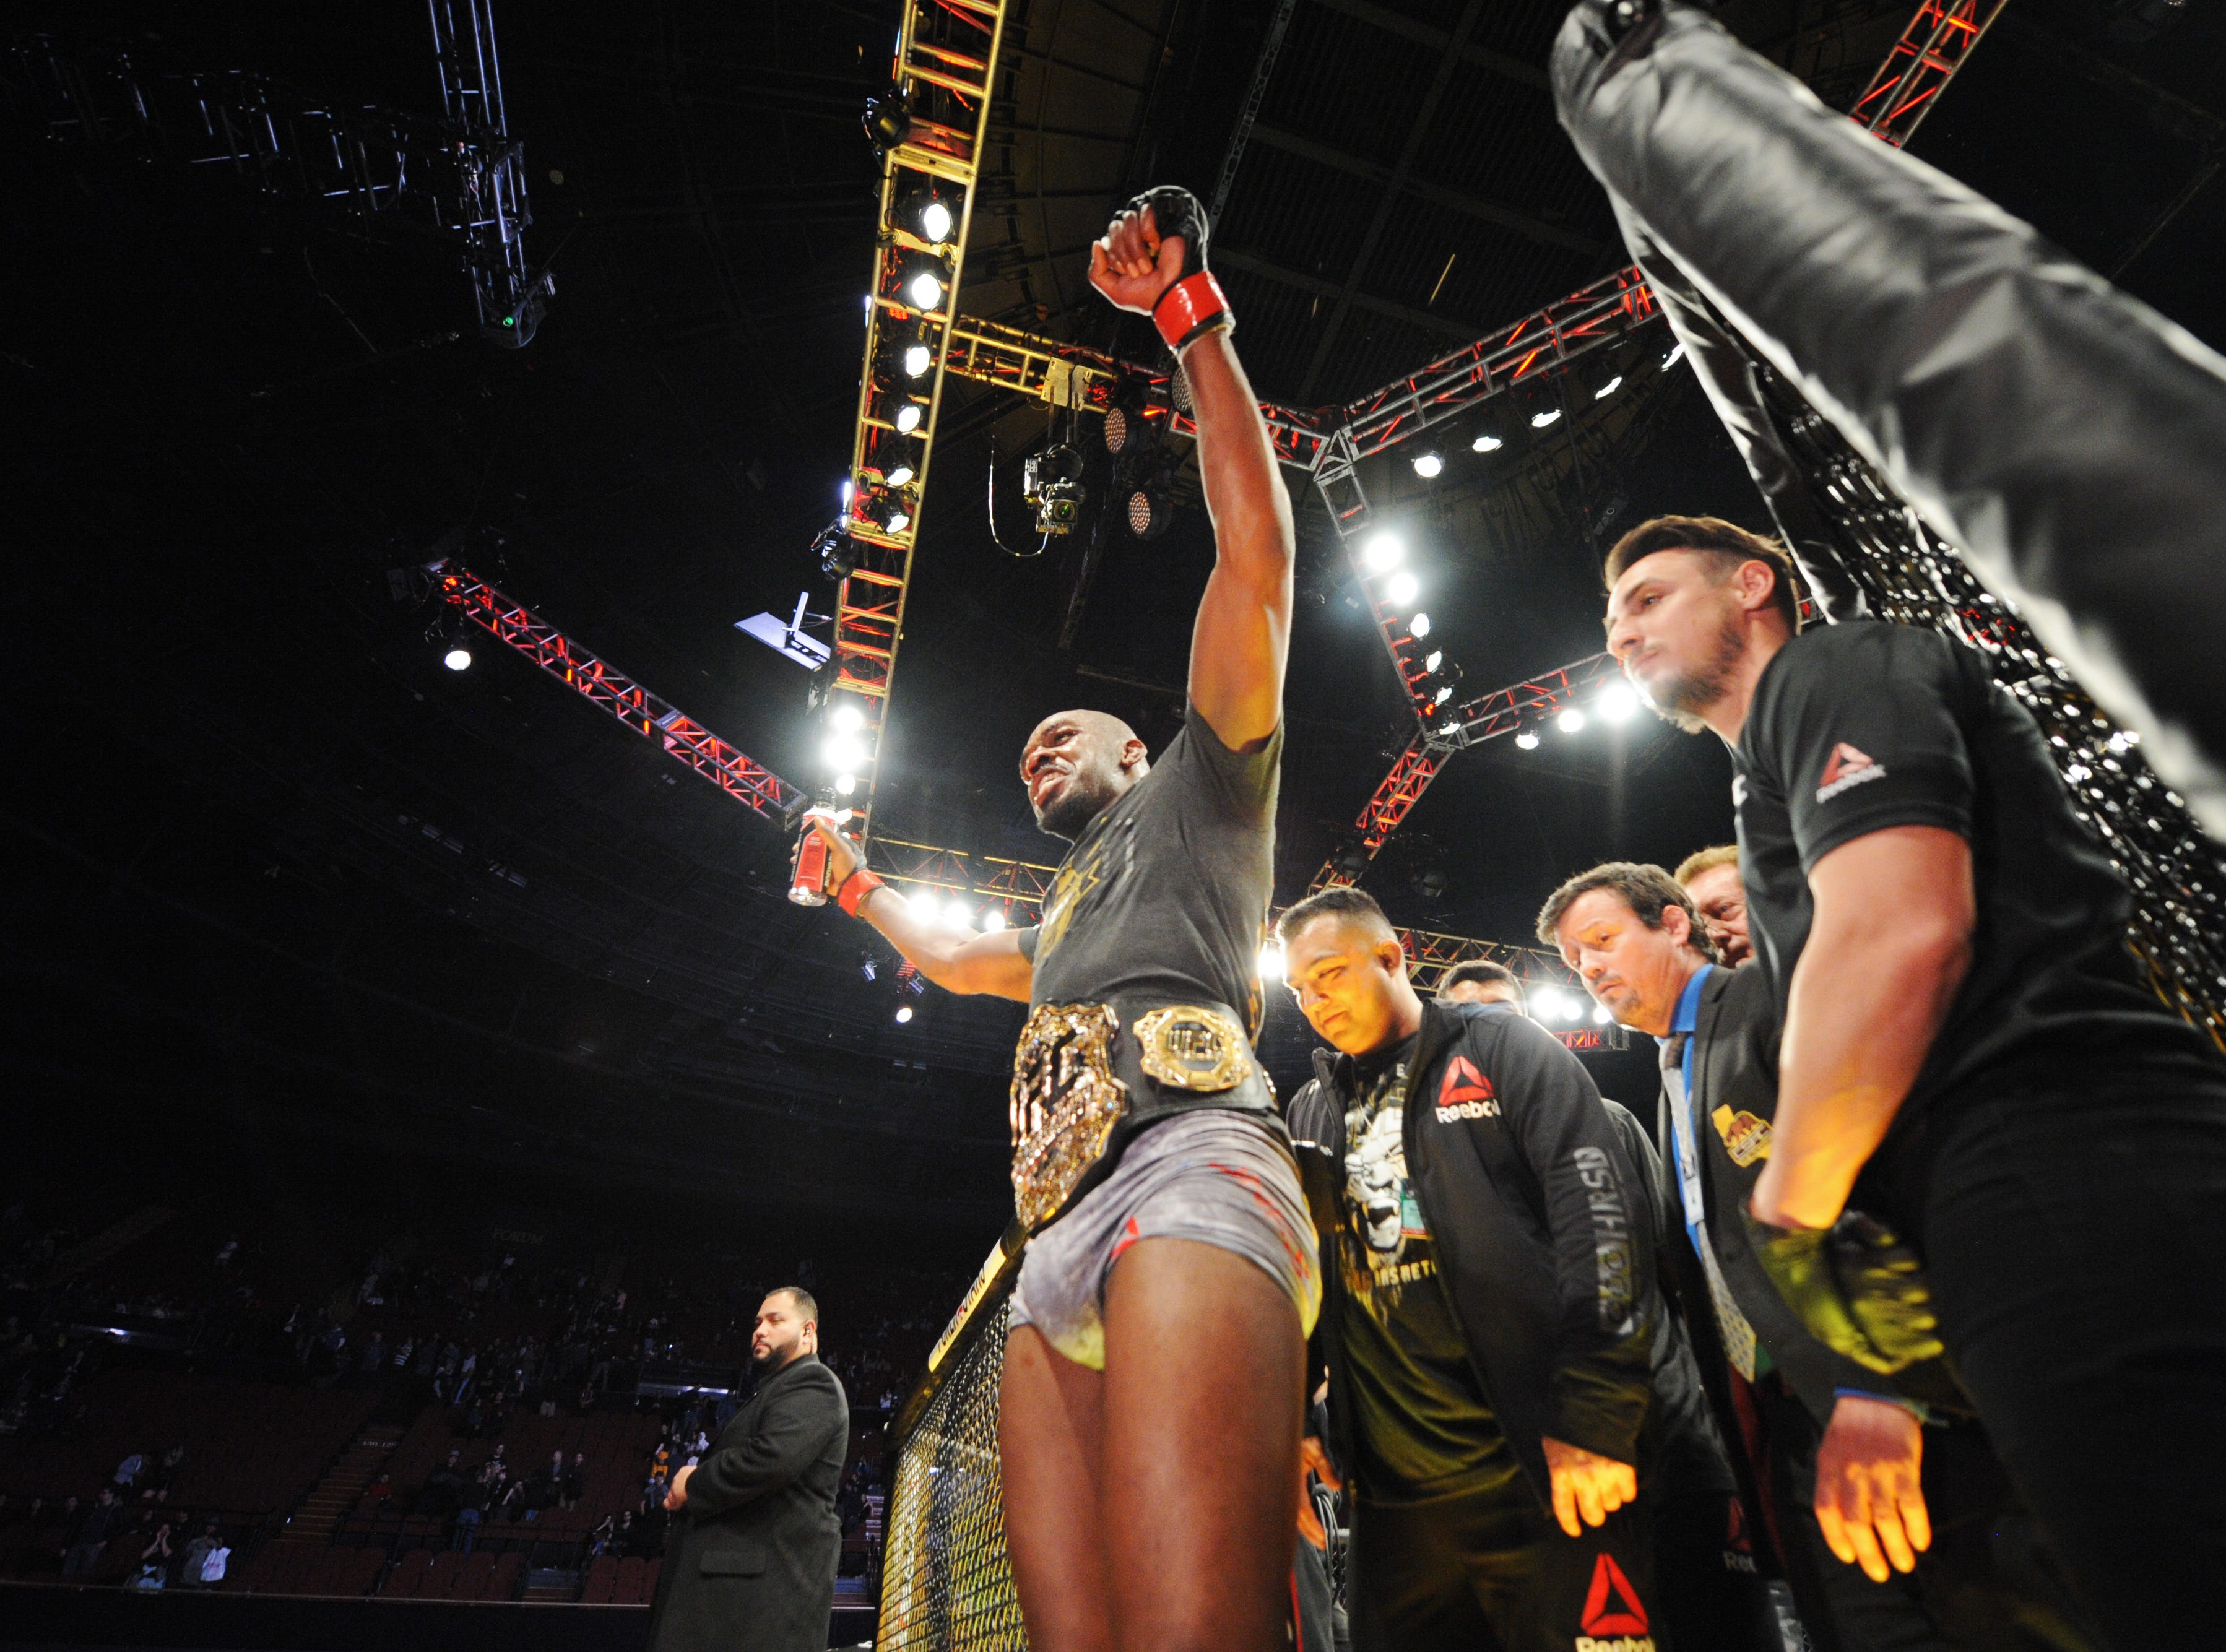 Dec 29, 2018; Los Angeles, CA, USA; Jon Jones (red gloves) exits the octogon after his victory over Alexander Gustafsson (not pictured) during UFC 232 at The Forum. Mandatory Credit: Gary A. Vasquez-USA TODAY Sports